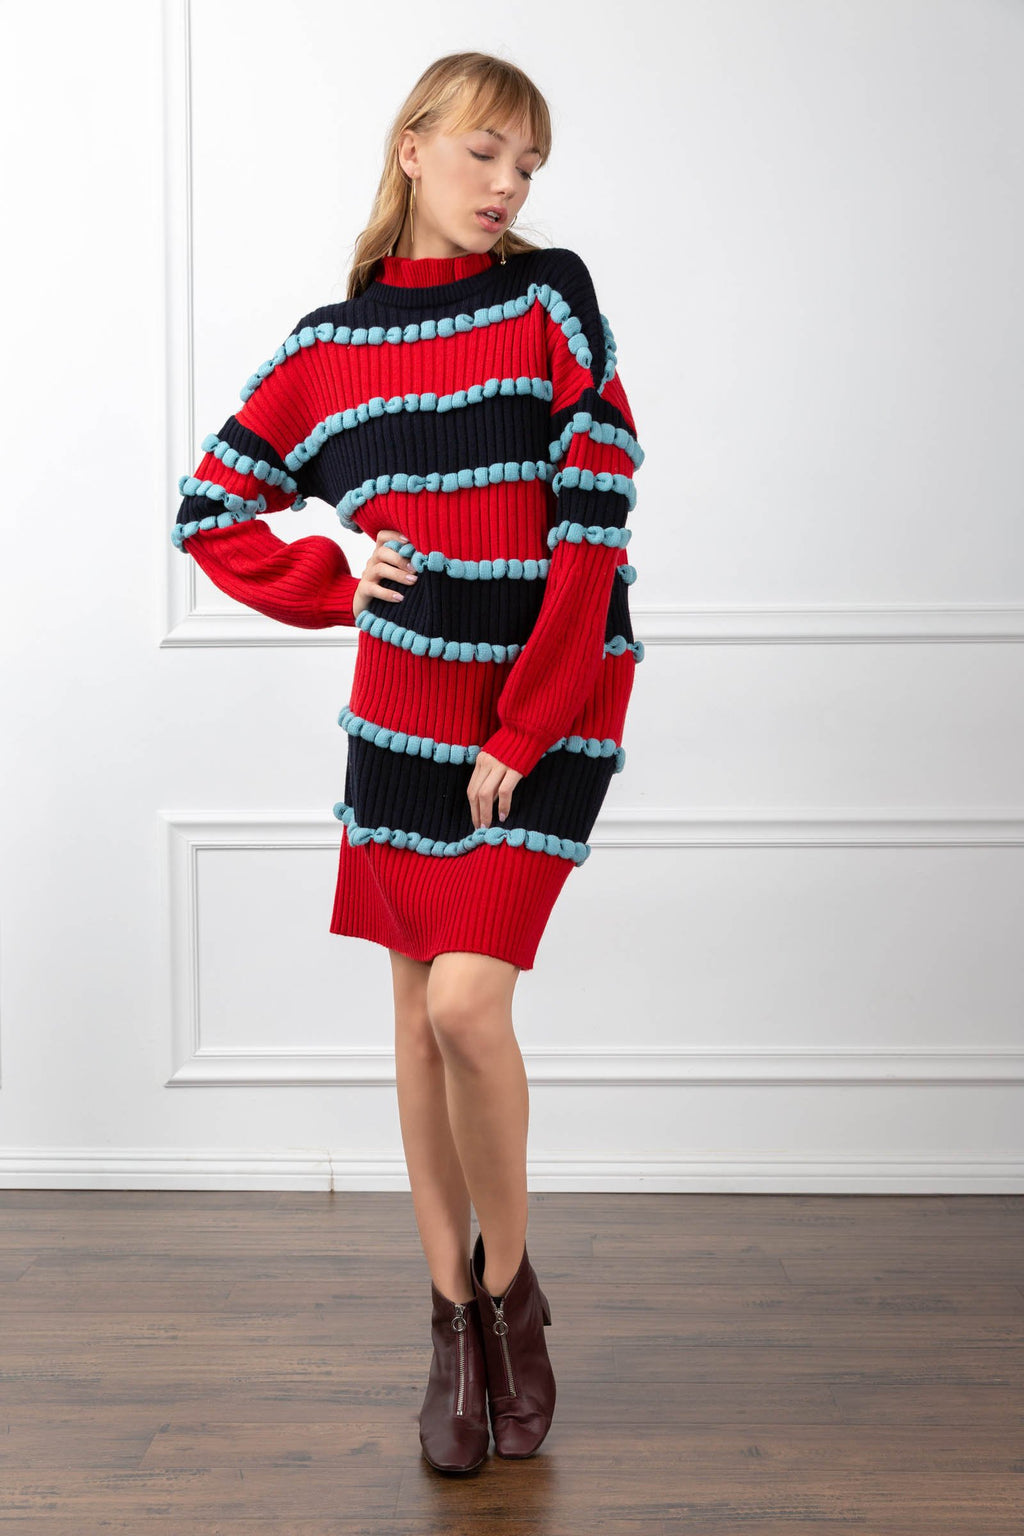 Cassandra Dress in Knitwear by J.ING - an L.A based women's fashion line